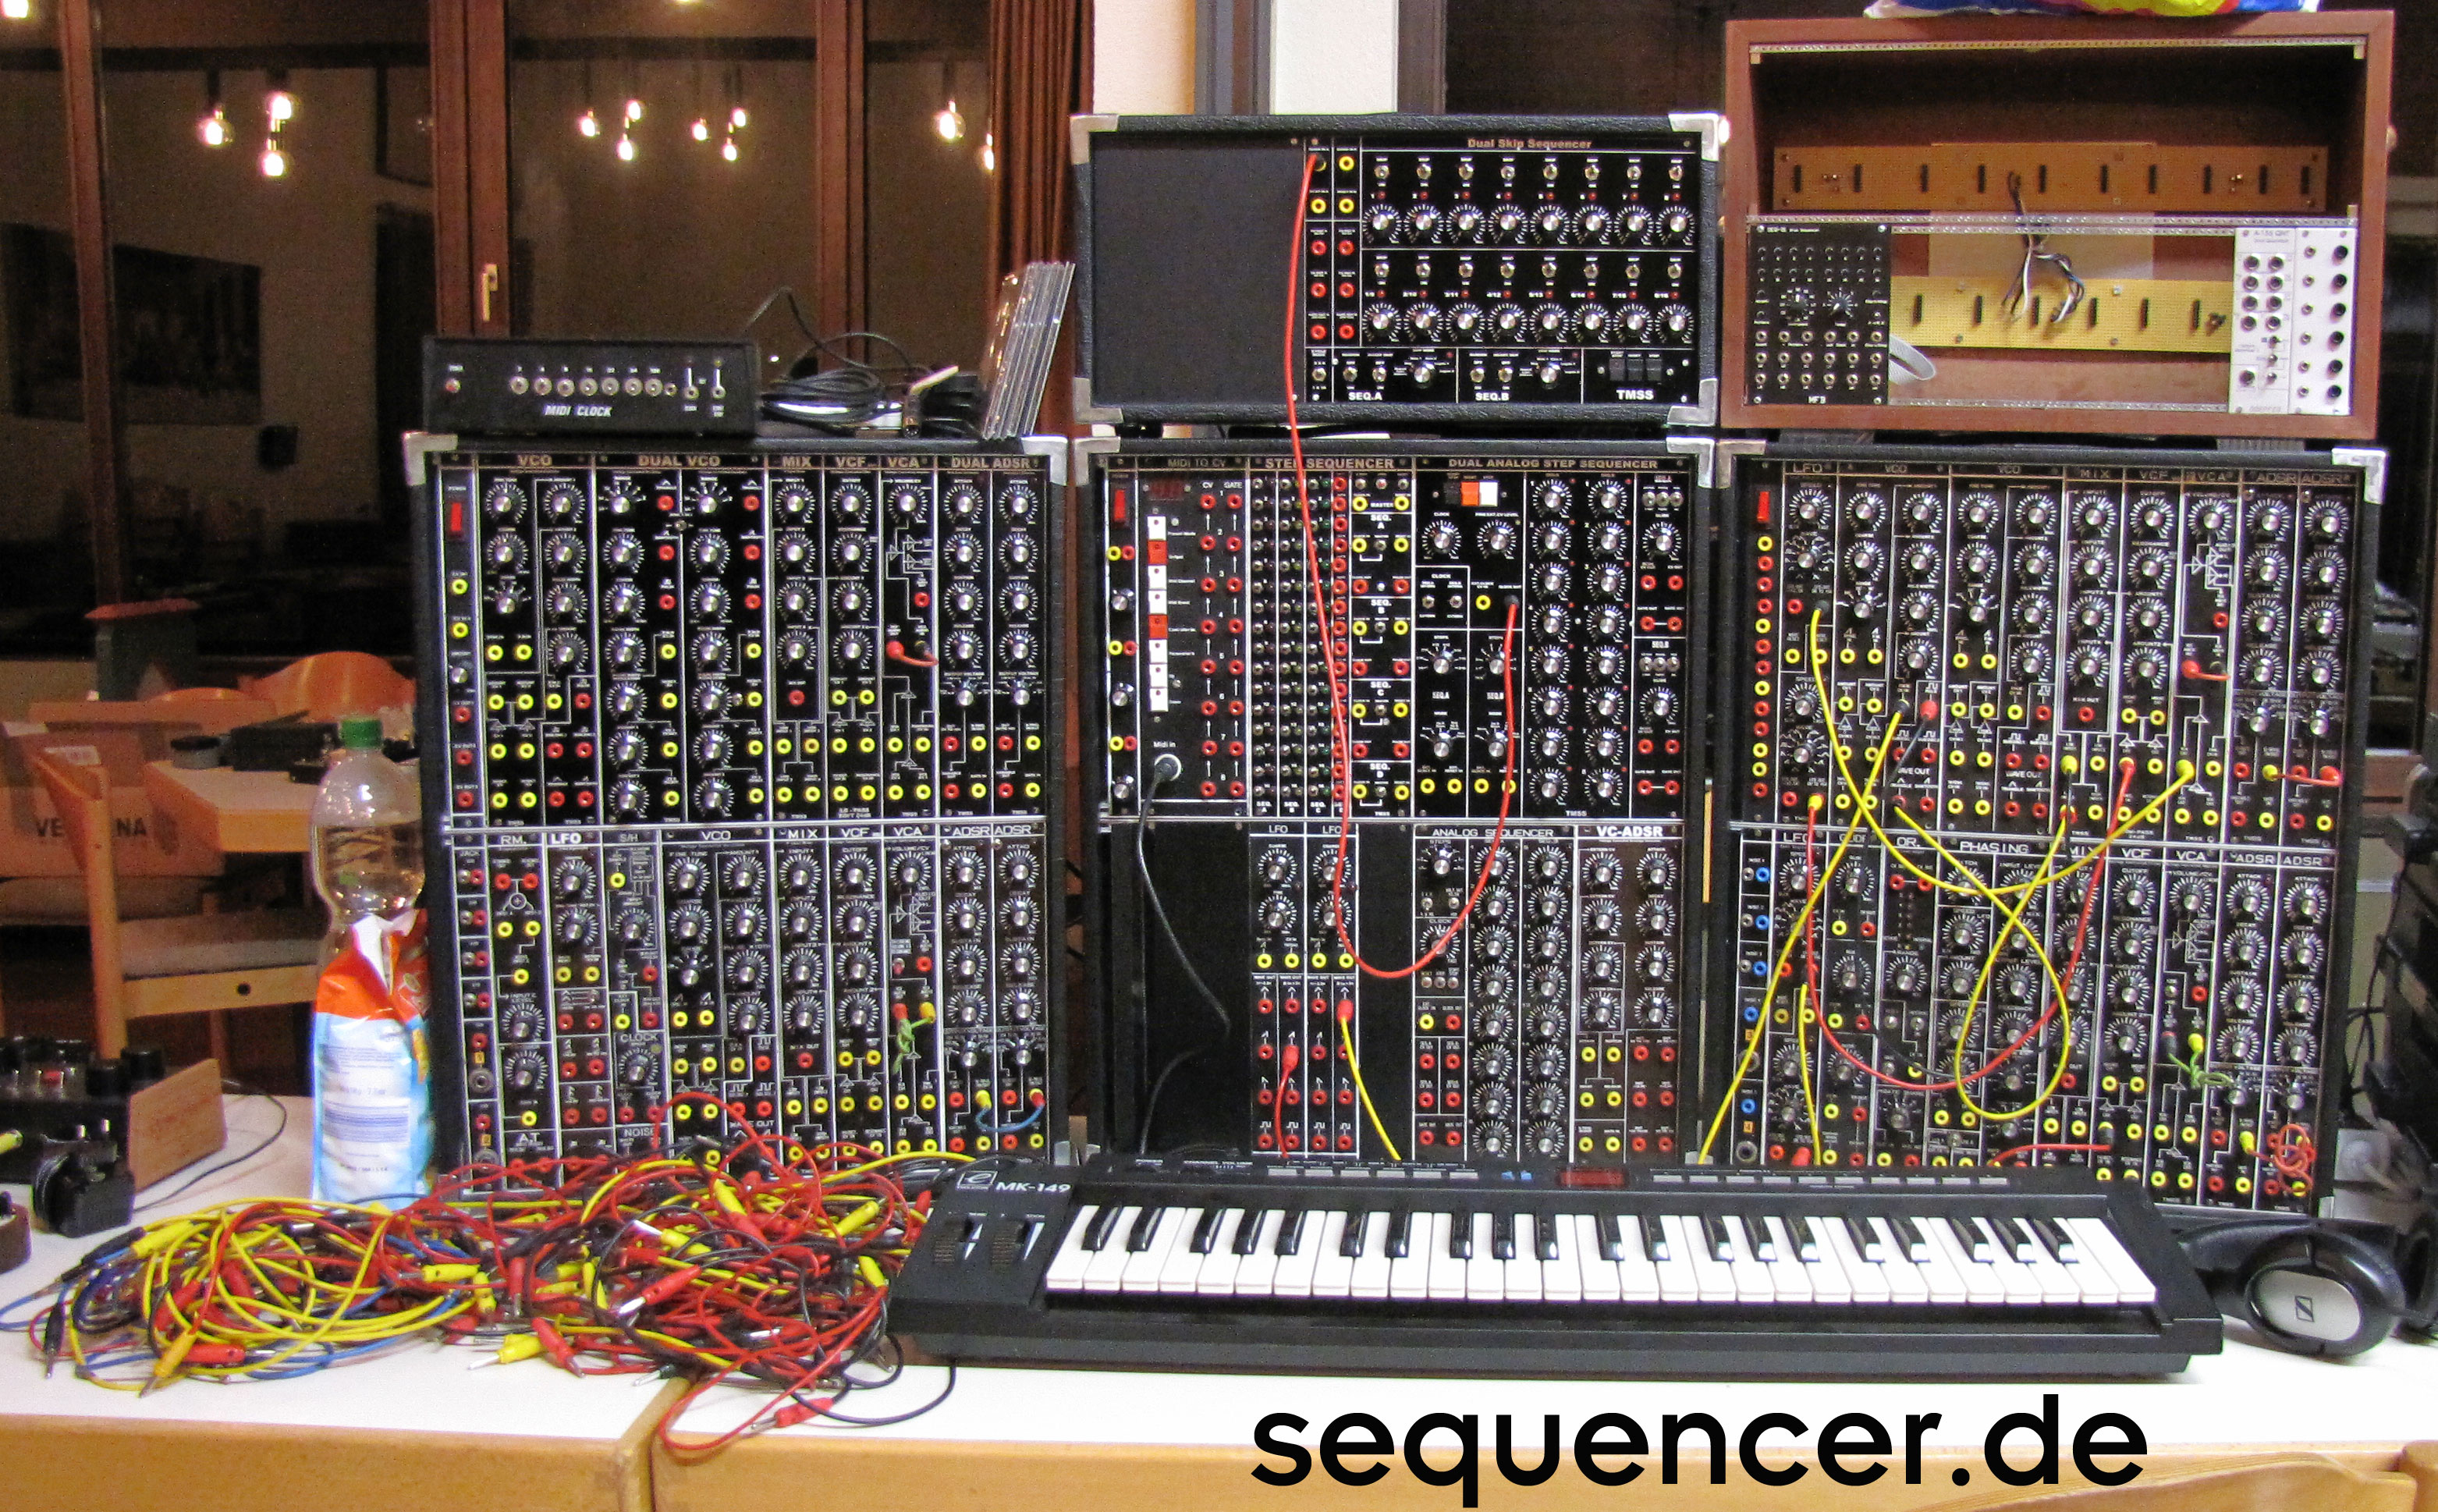 theis modular tmss modular synthesizer analog step sequencer. Black Bedroom Furniture Sets. Home Design Ideas